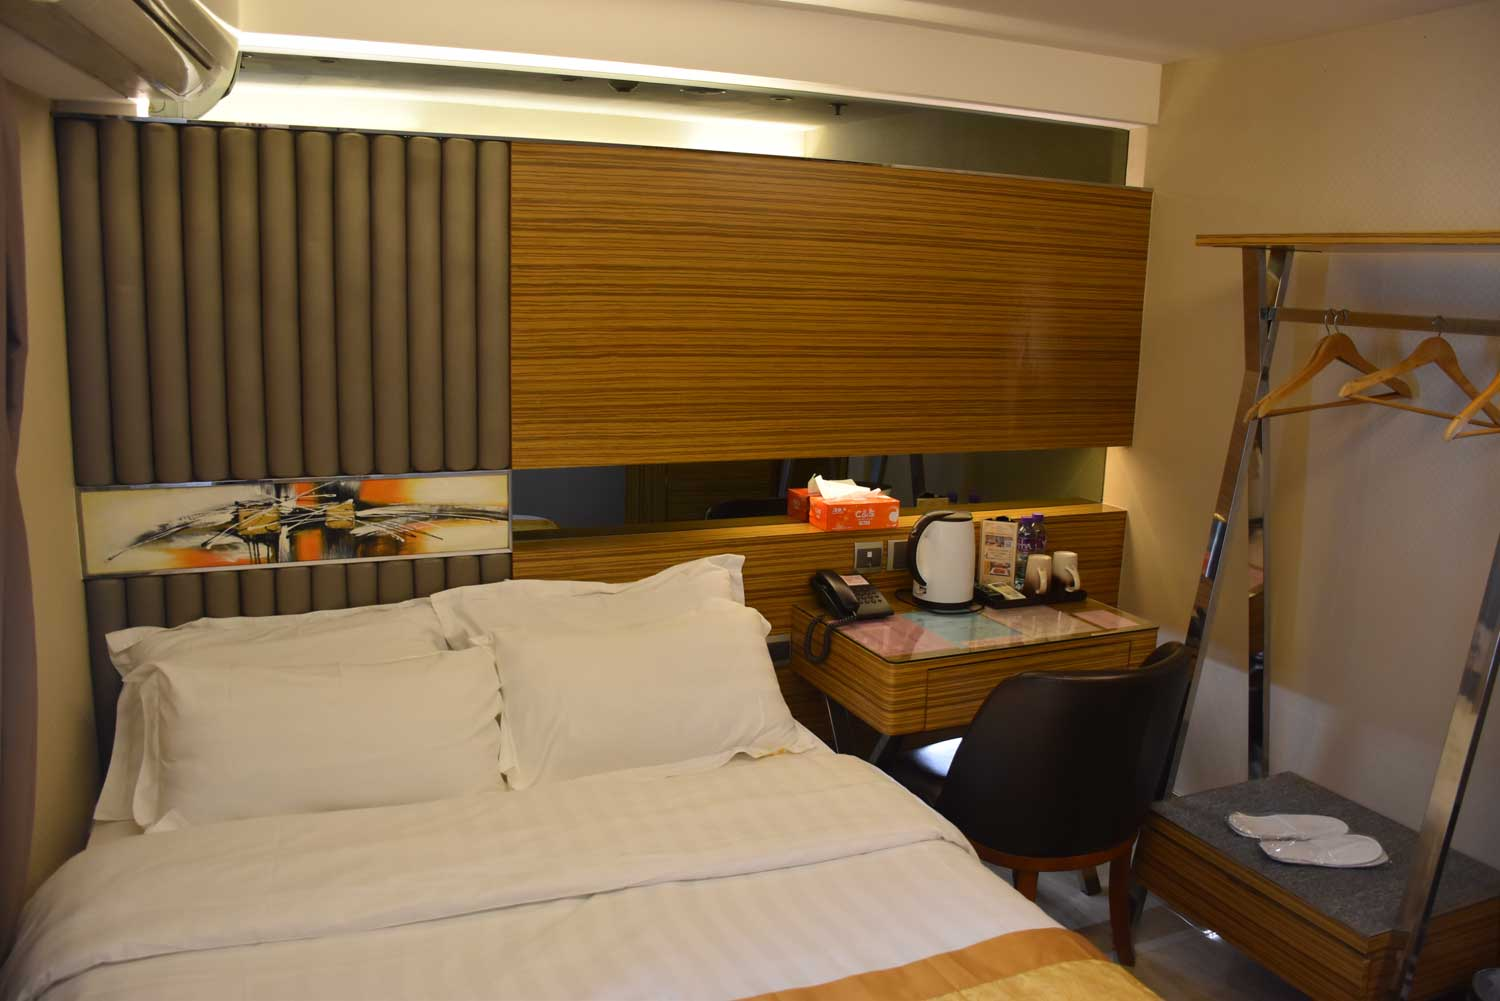 Hong Thai Hotel bed and desk